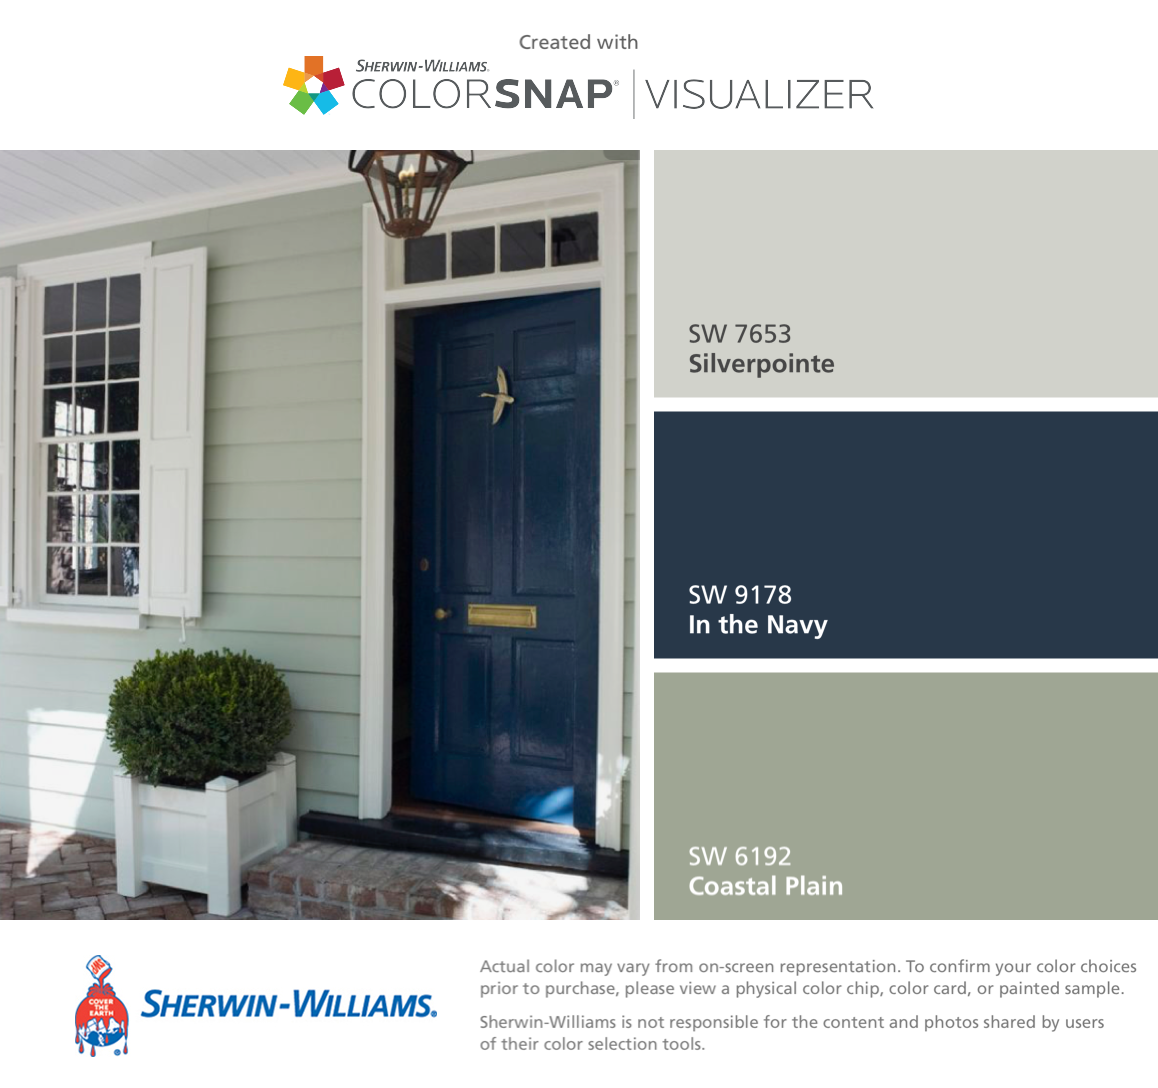 I Found These Colors With Colorsnap Visualizer For Iphone By Sherwin Williams Silverpointe Sw